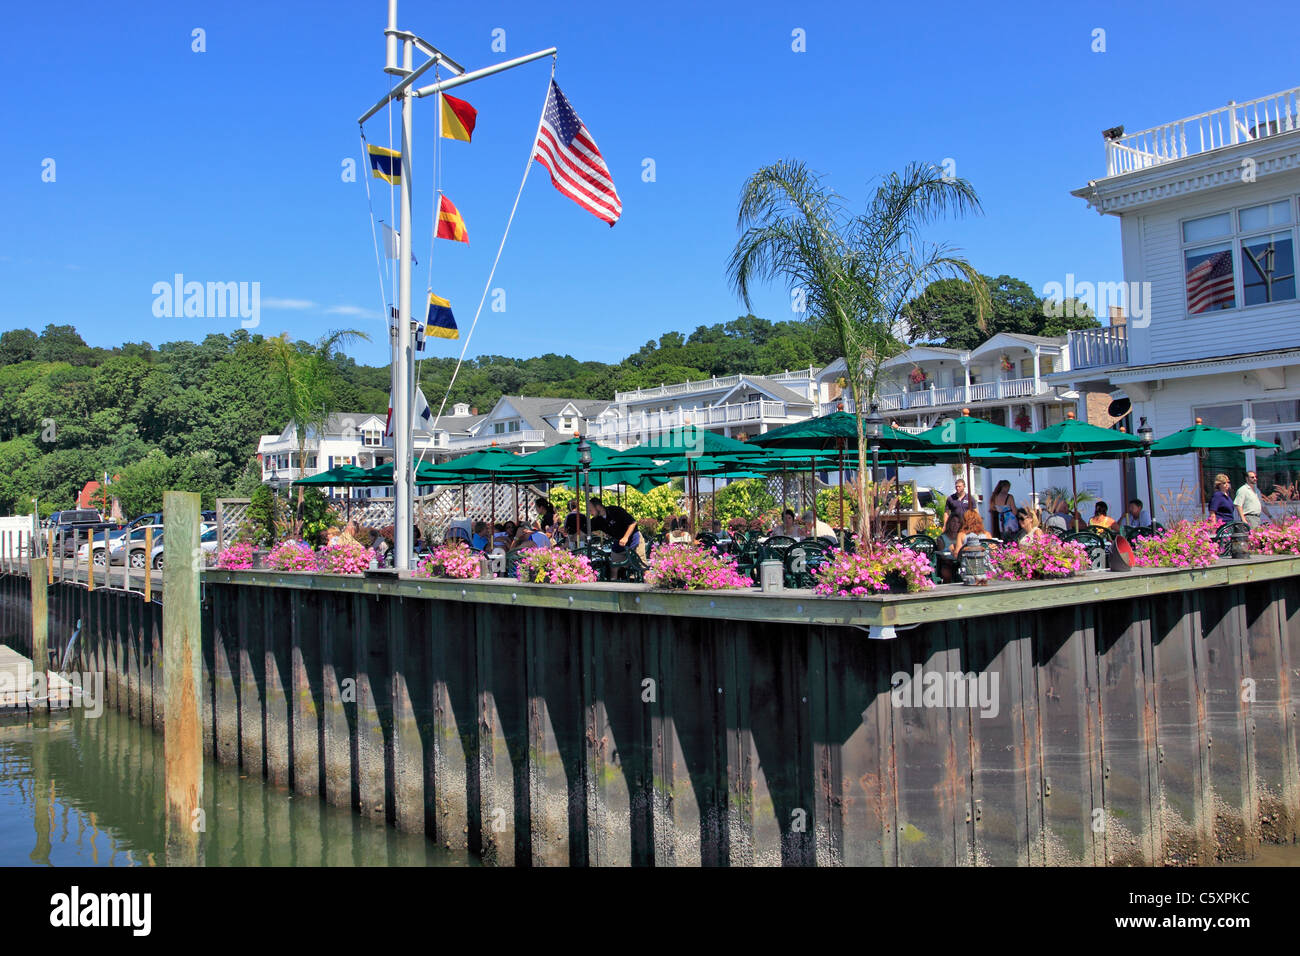 Outdoor Dining At Danfords Hotel And Marina Village Of Port